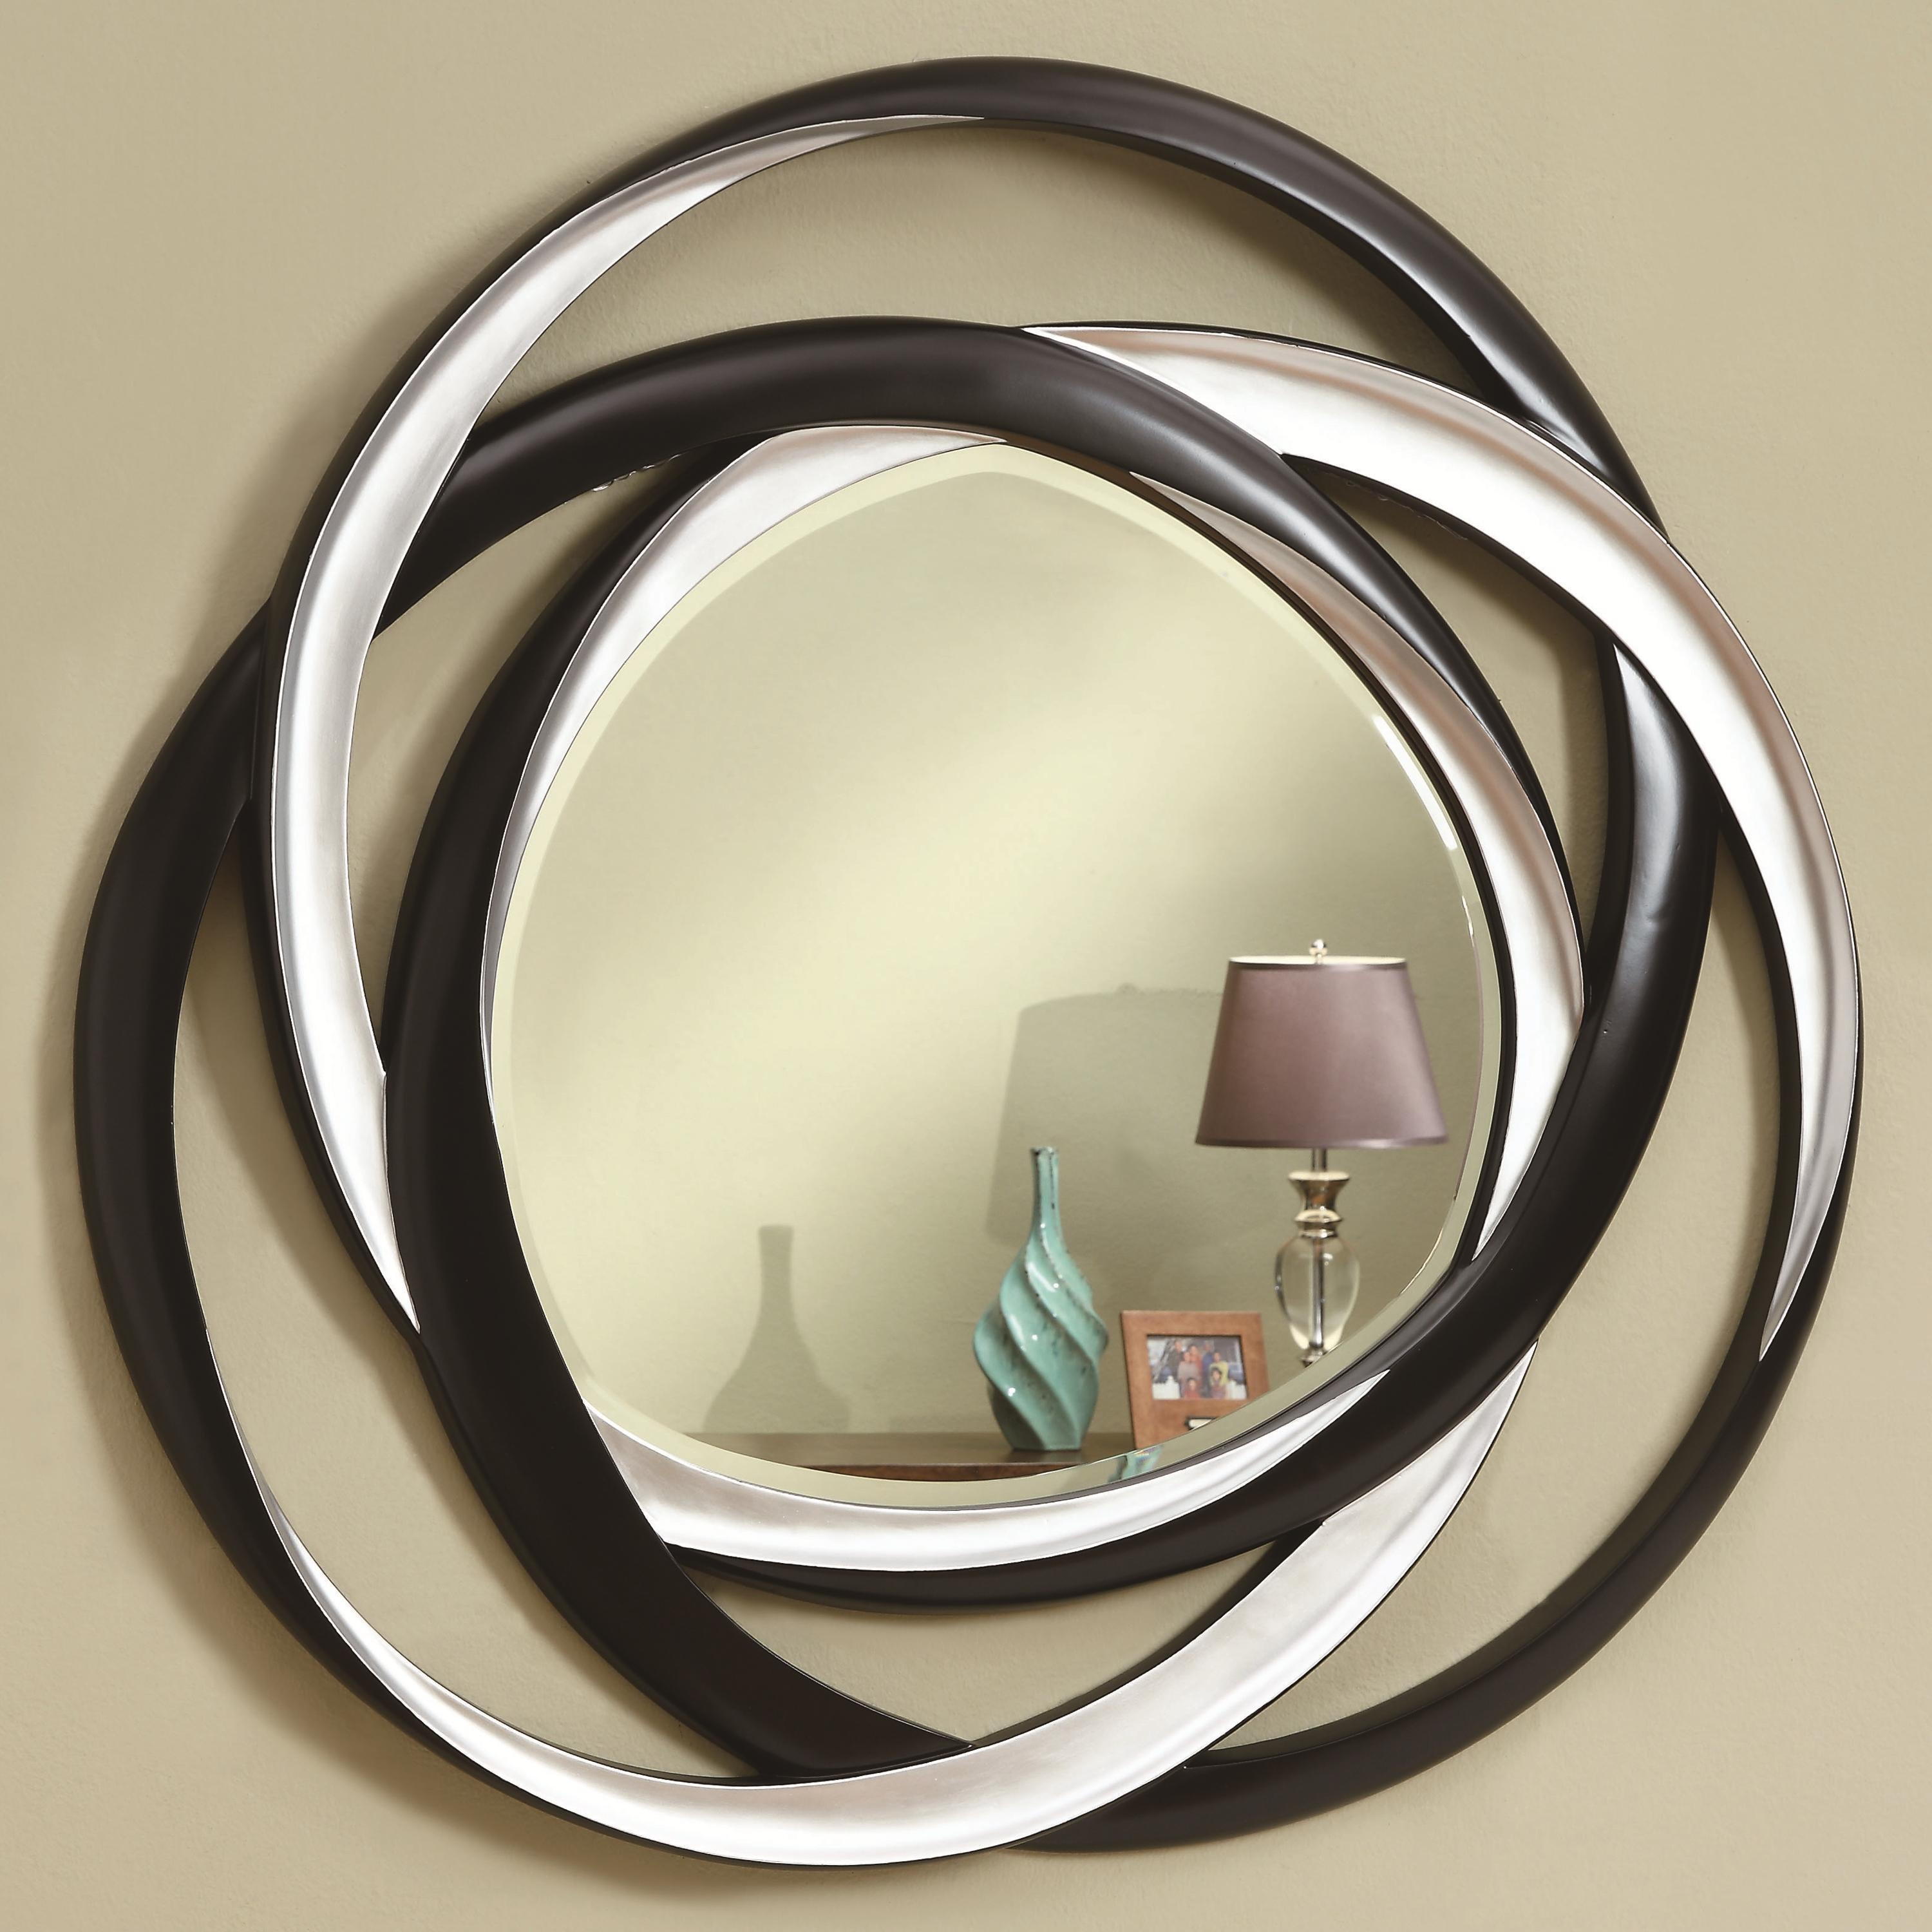 Contemporary Mirrors For Living Room 8988 Intended For Contempary Mirrors (View 14 of 15)